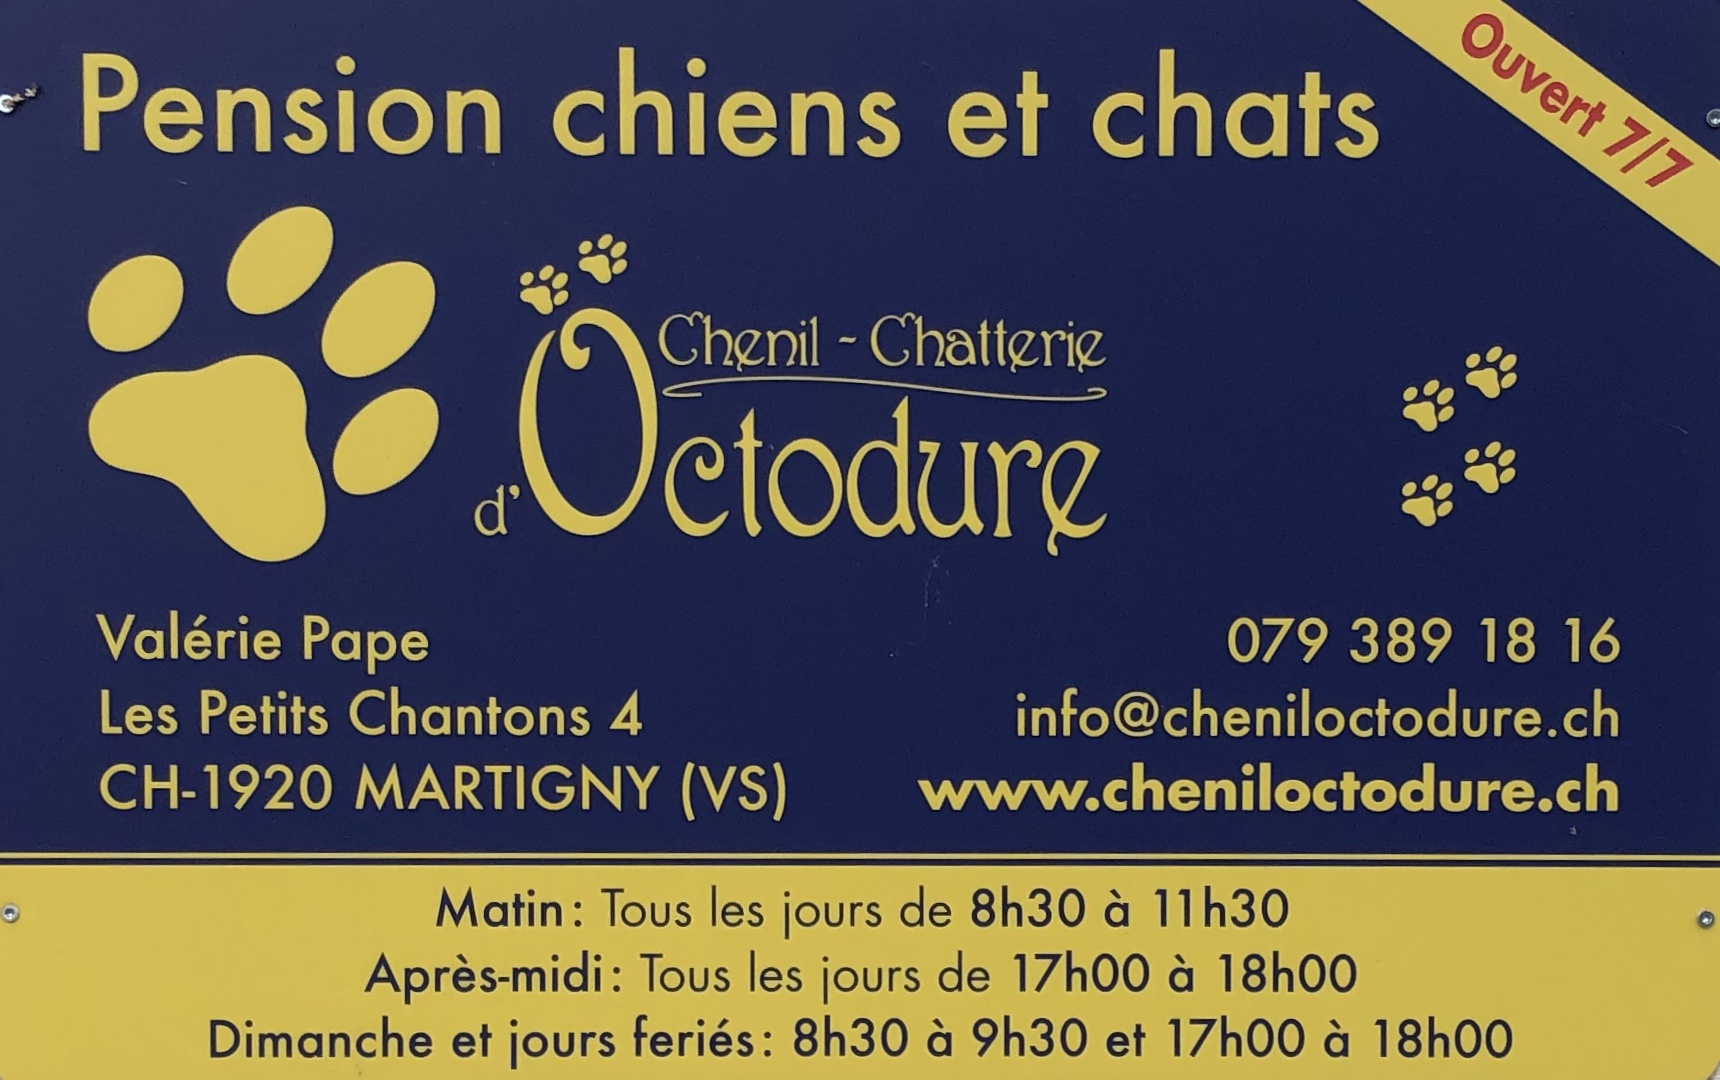 Chenil-Chatterie d'Octodure